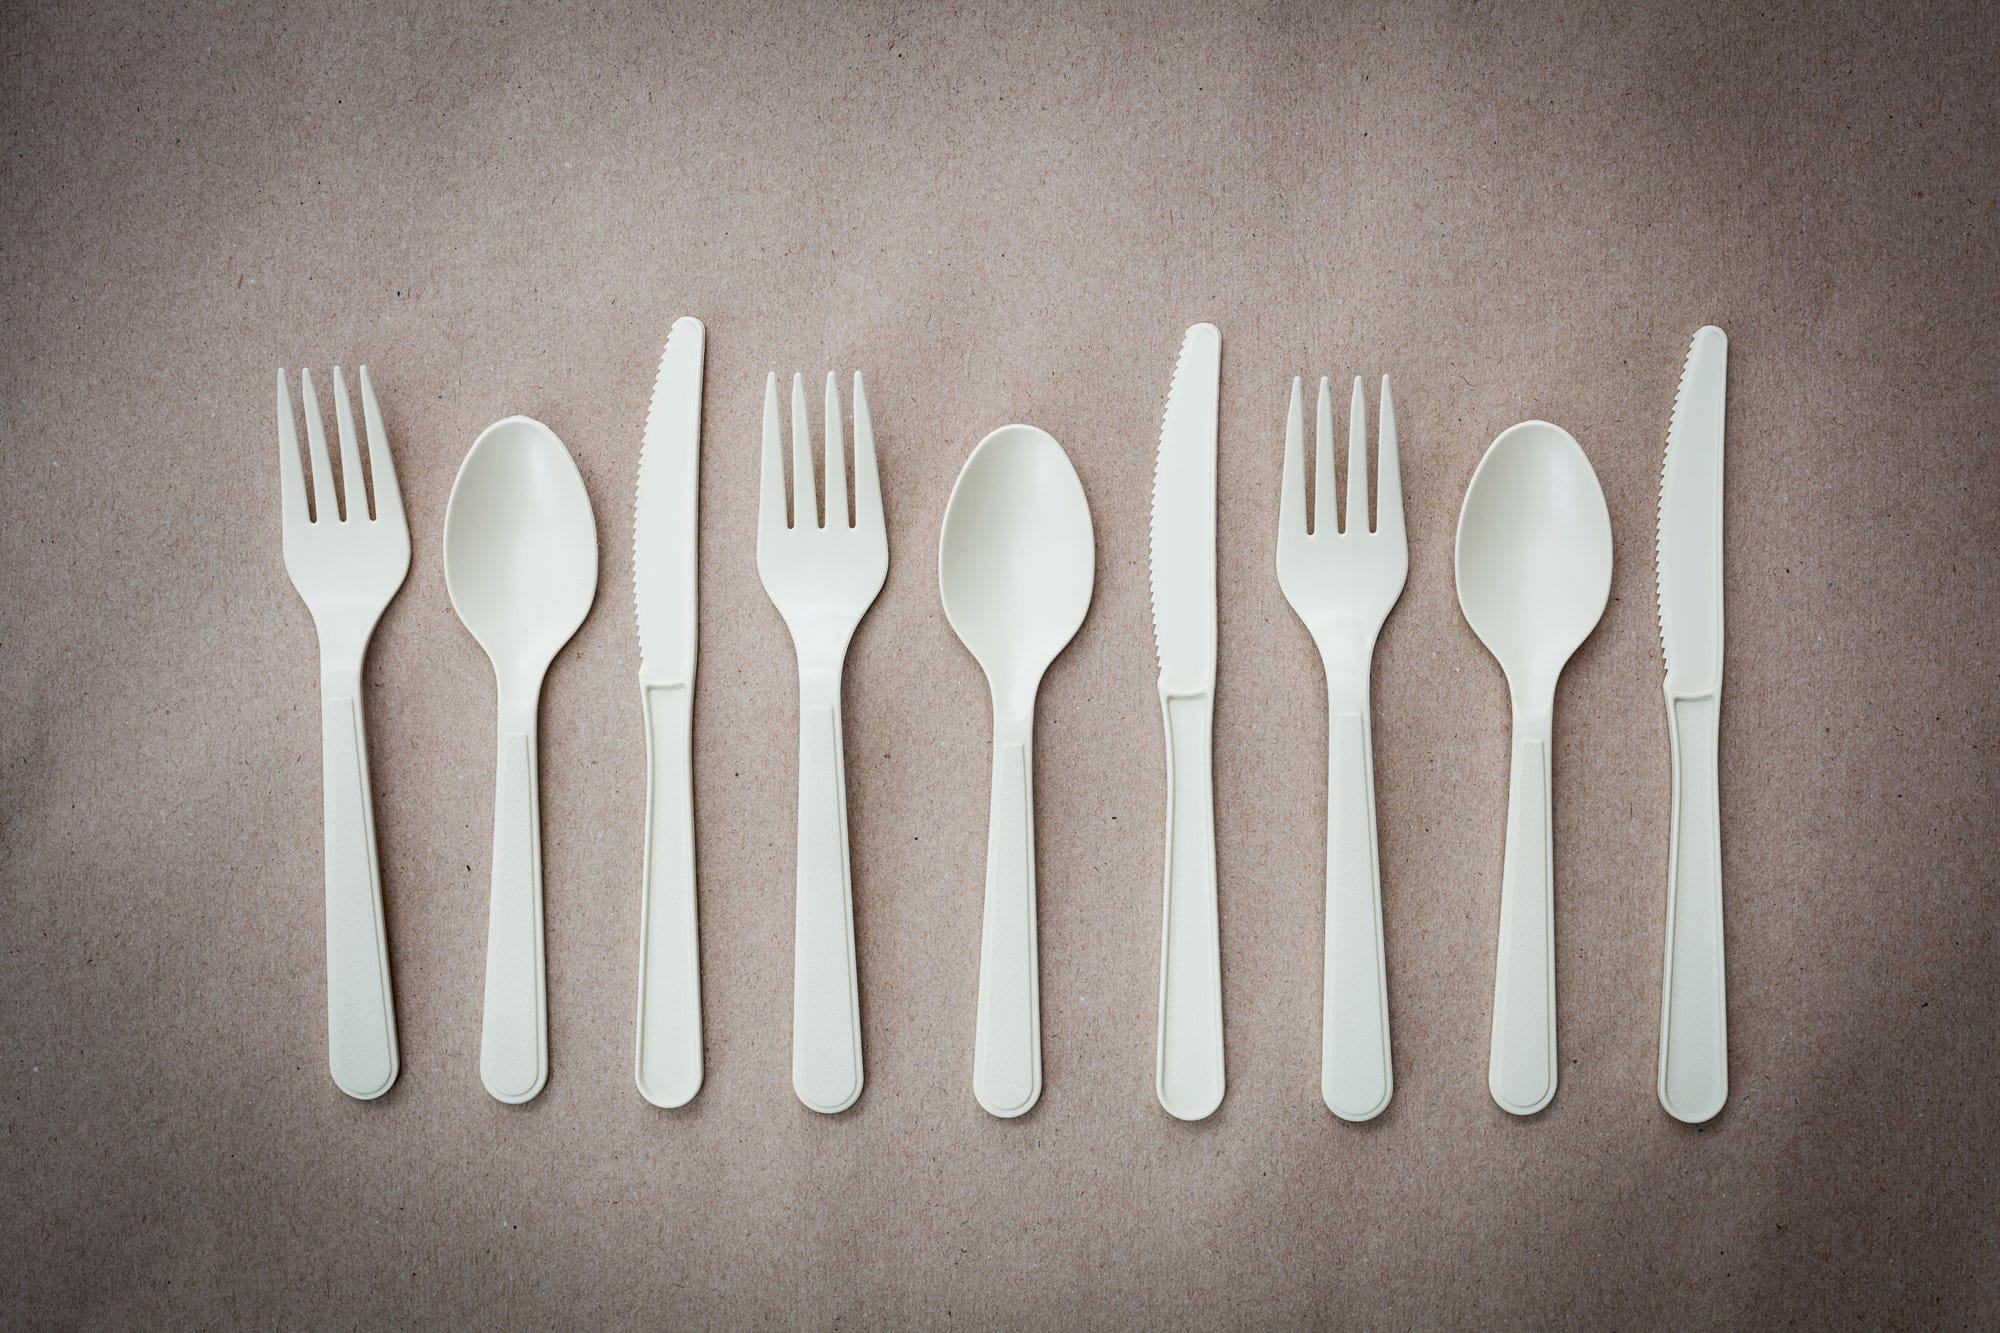 Cutlery - CPLA - Compostable - NaturePac